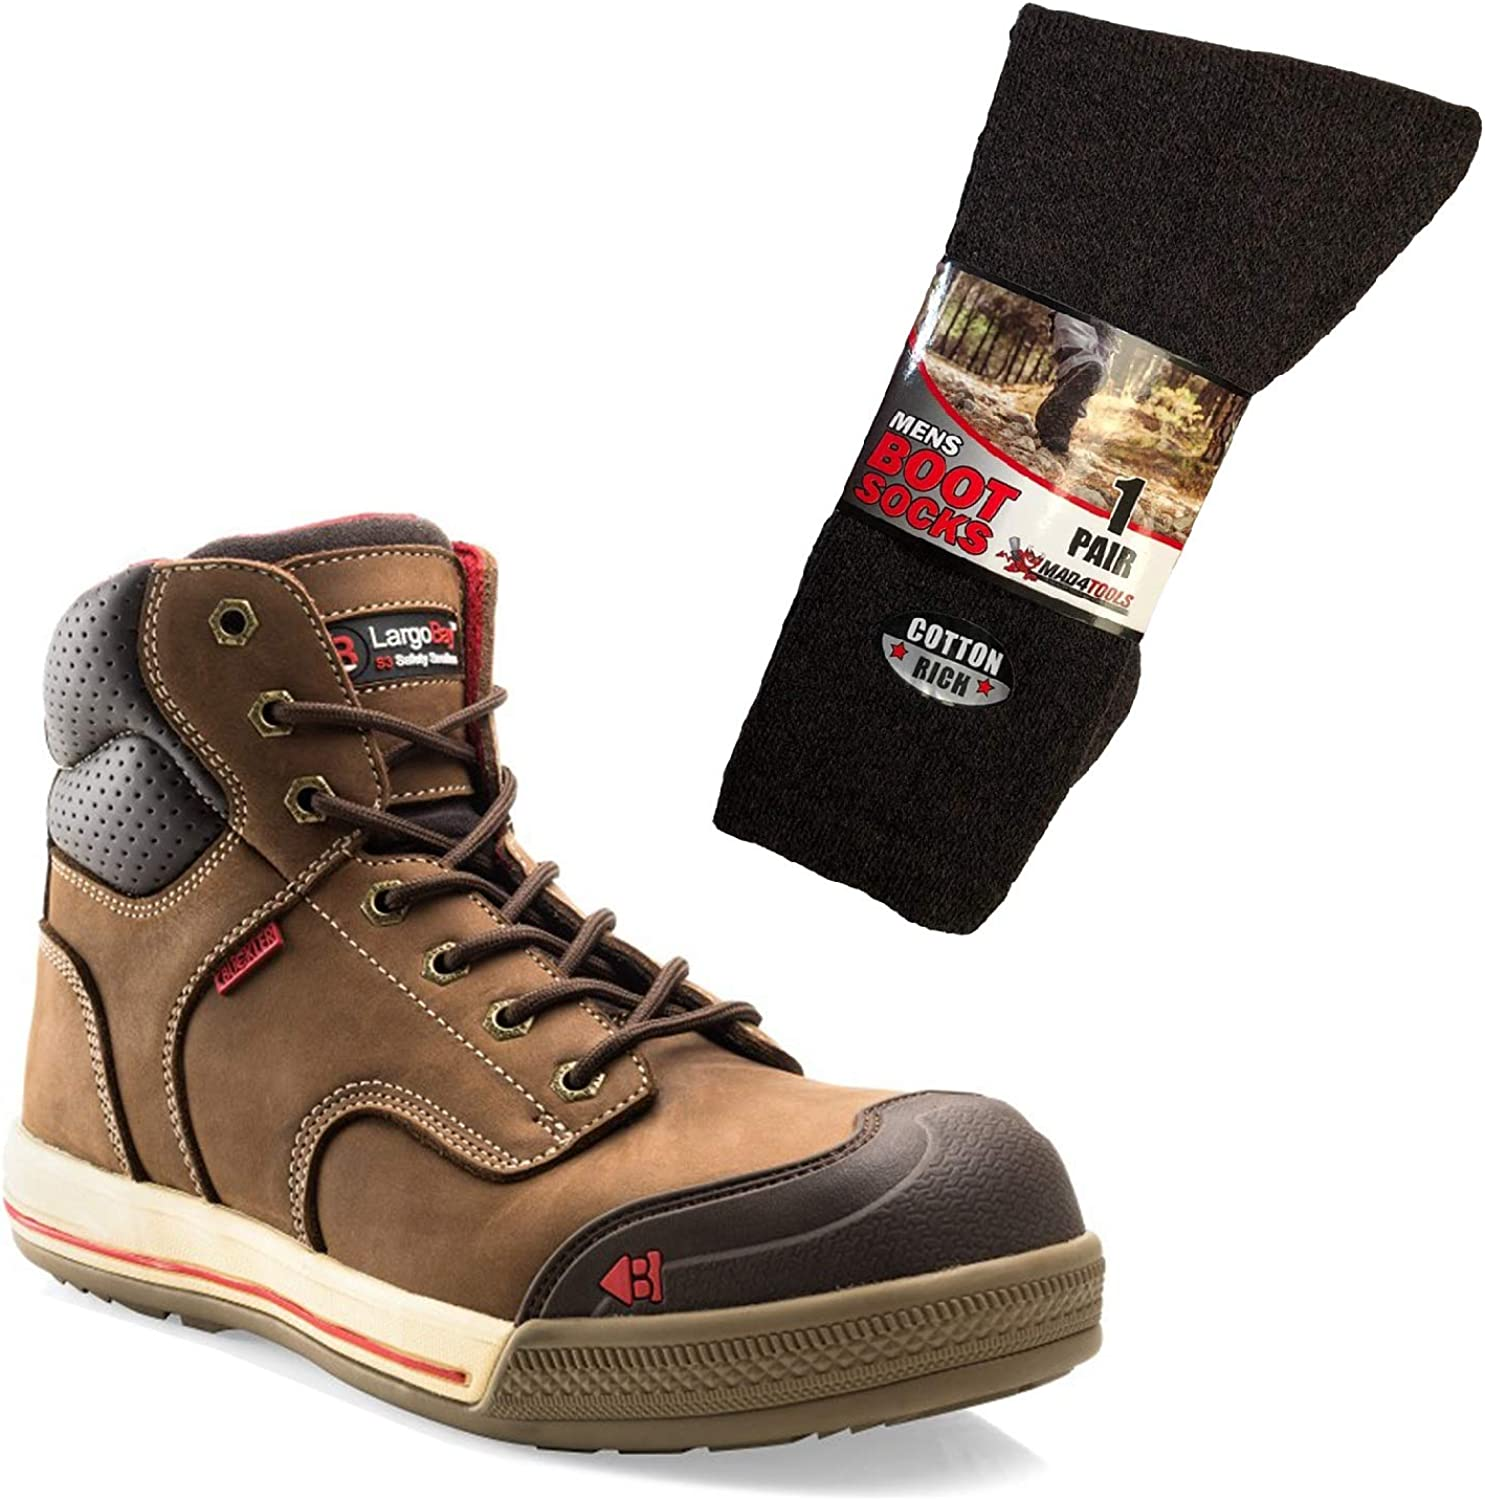 Buckler Largo Bay Safety Hardwearing Work Boots Black or Brown Leather (Sizes 6-13) & mad4tools Work Boot Socks (1 Pair)